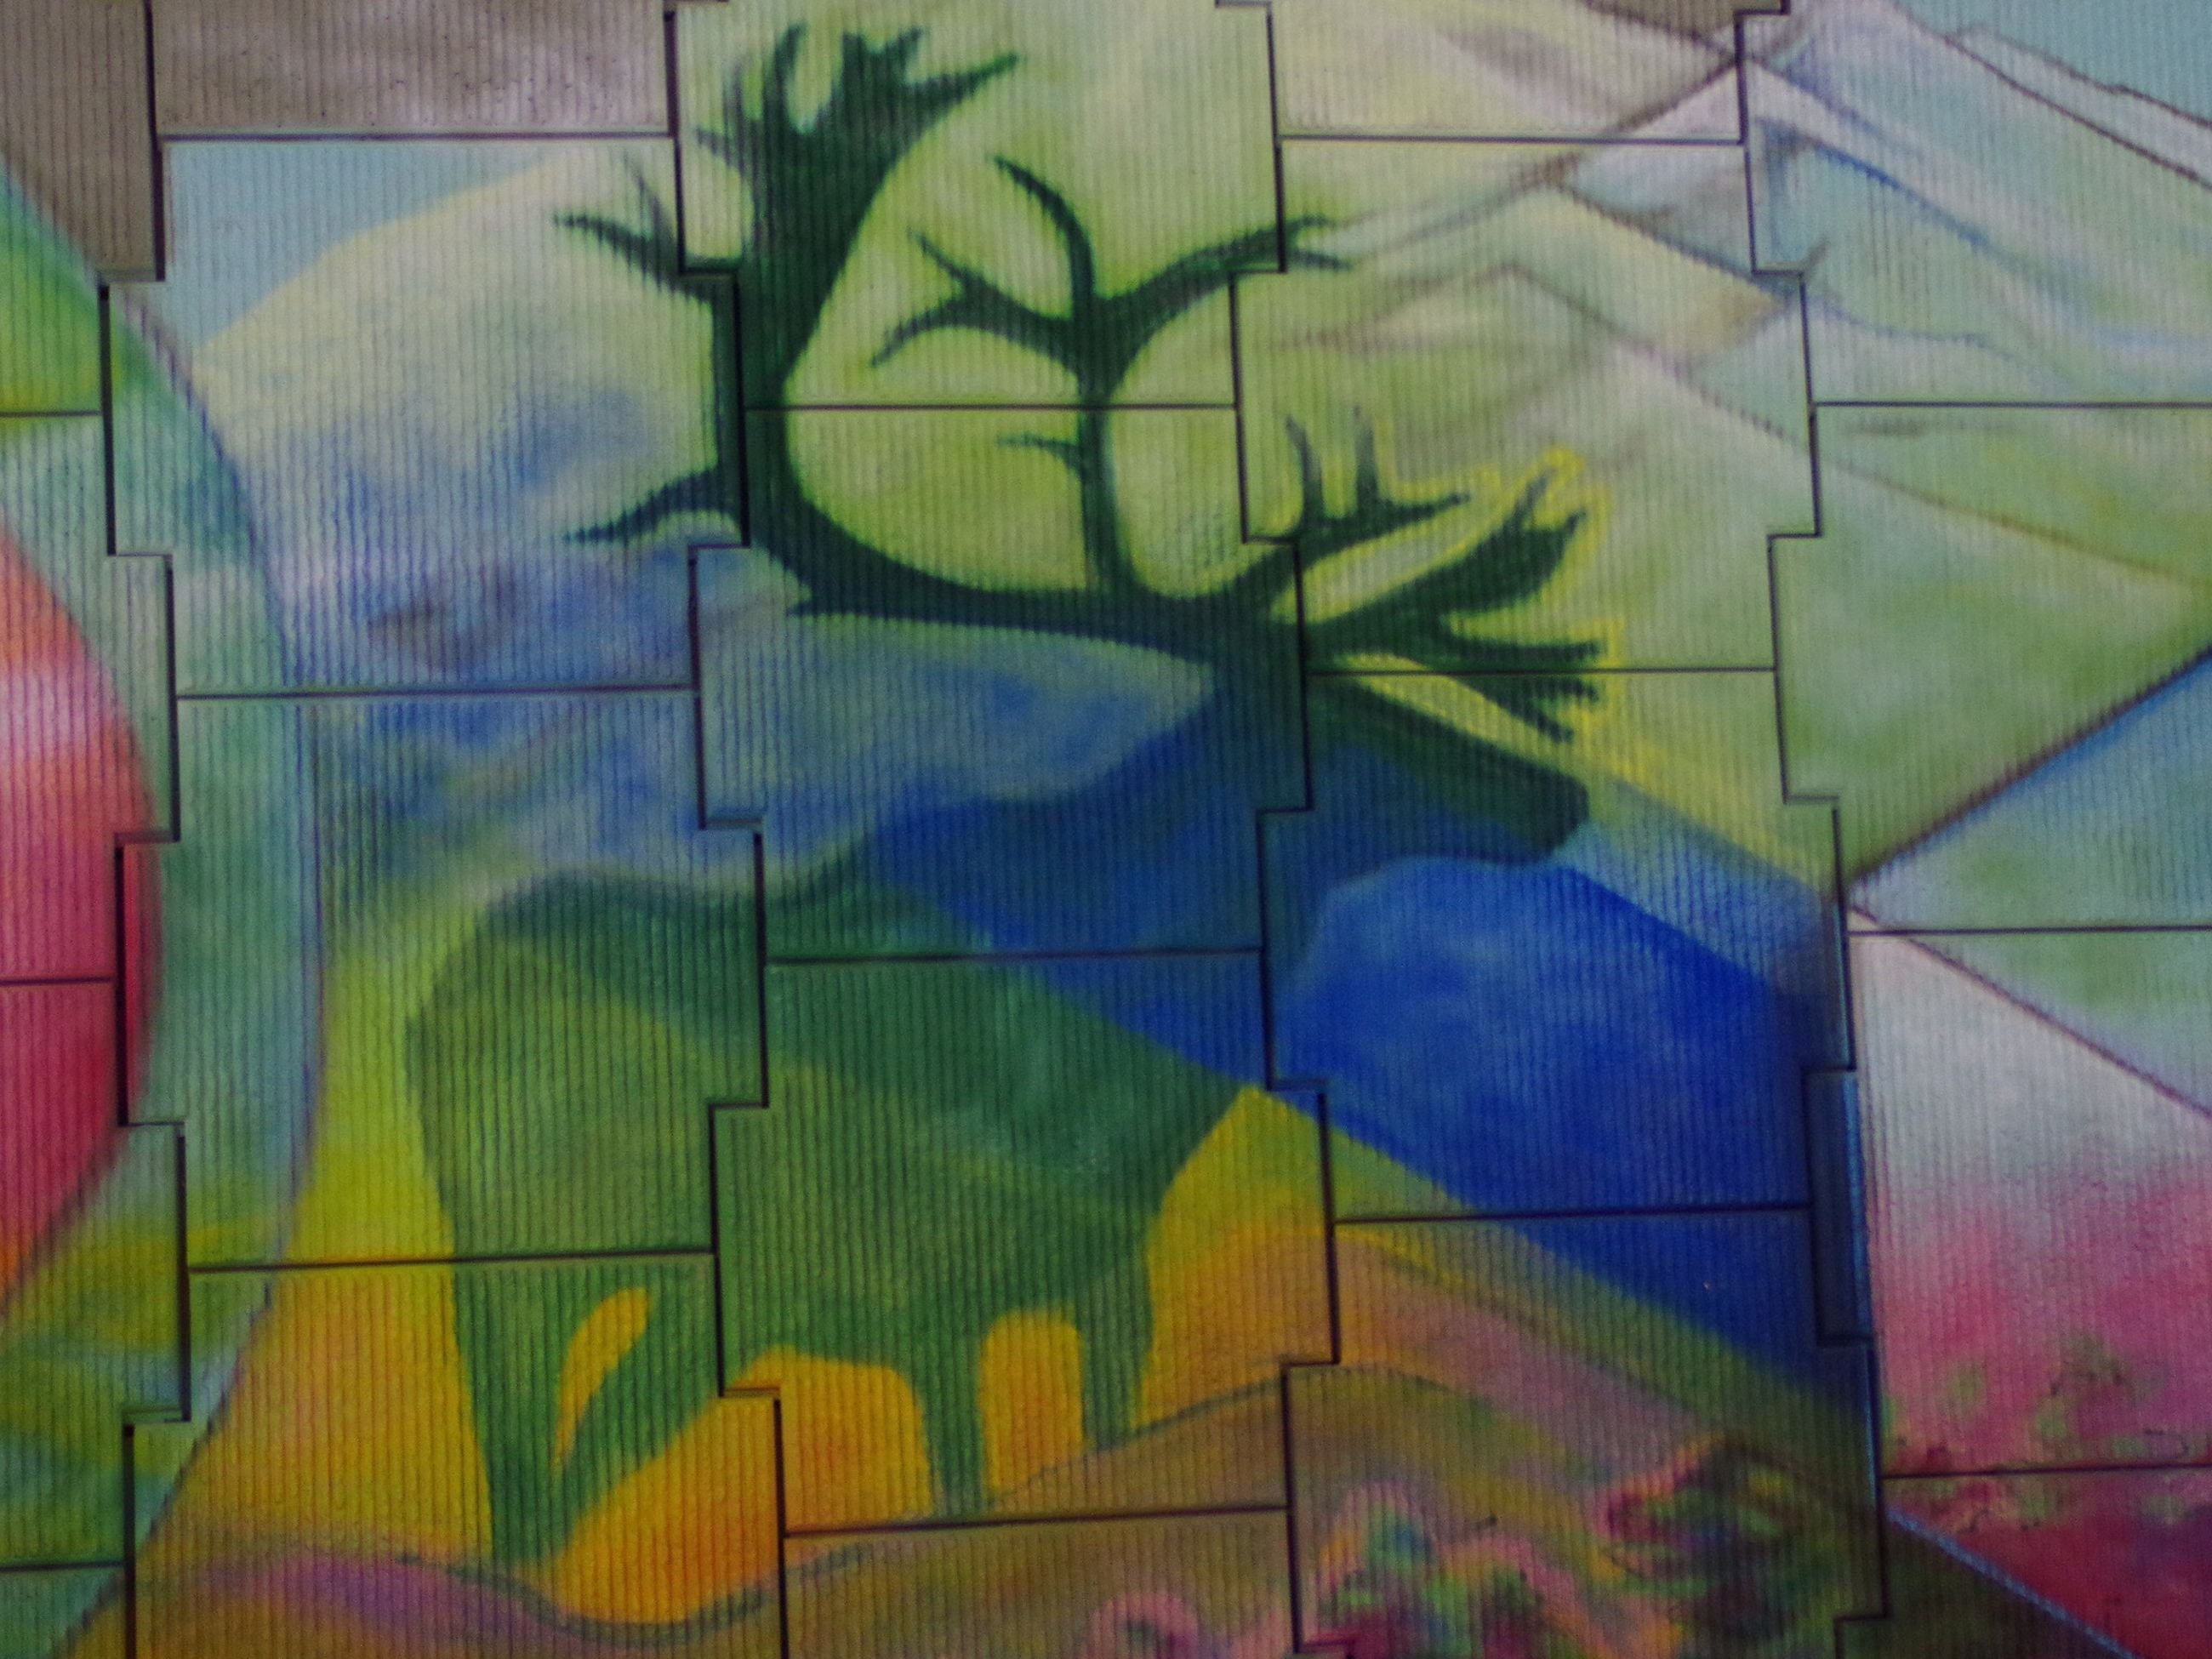 wall - building feature, indoors, pattern, built structure, architecture, multi colored, full frame, backgrounds, graffiti, art, creativity, wall, design, art and craft, green color, tile, no people, close-up, textured, building exterior